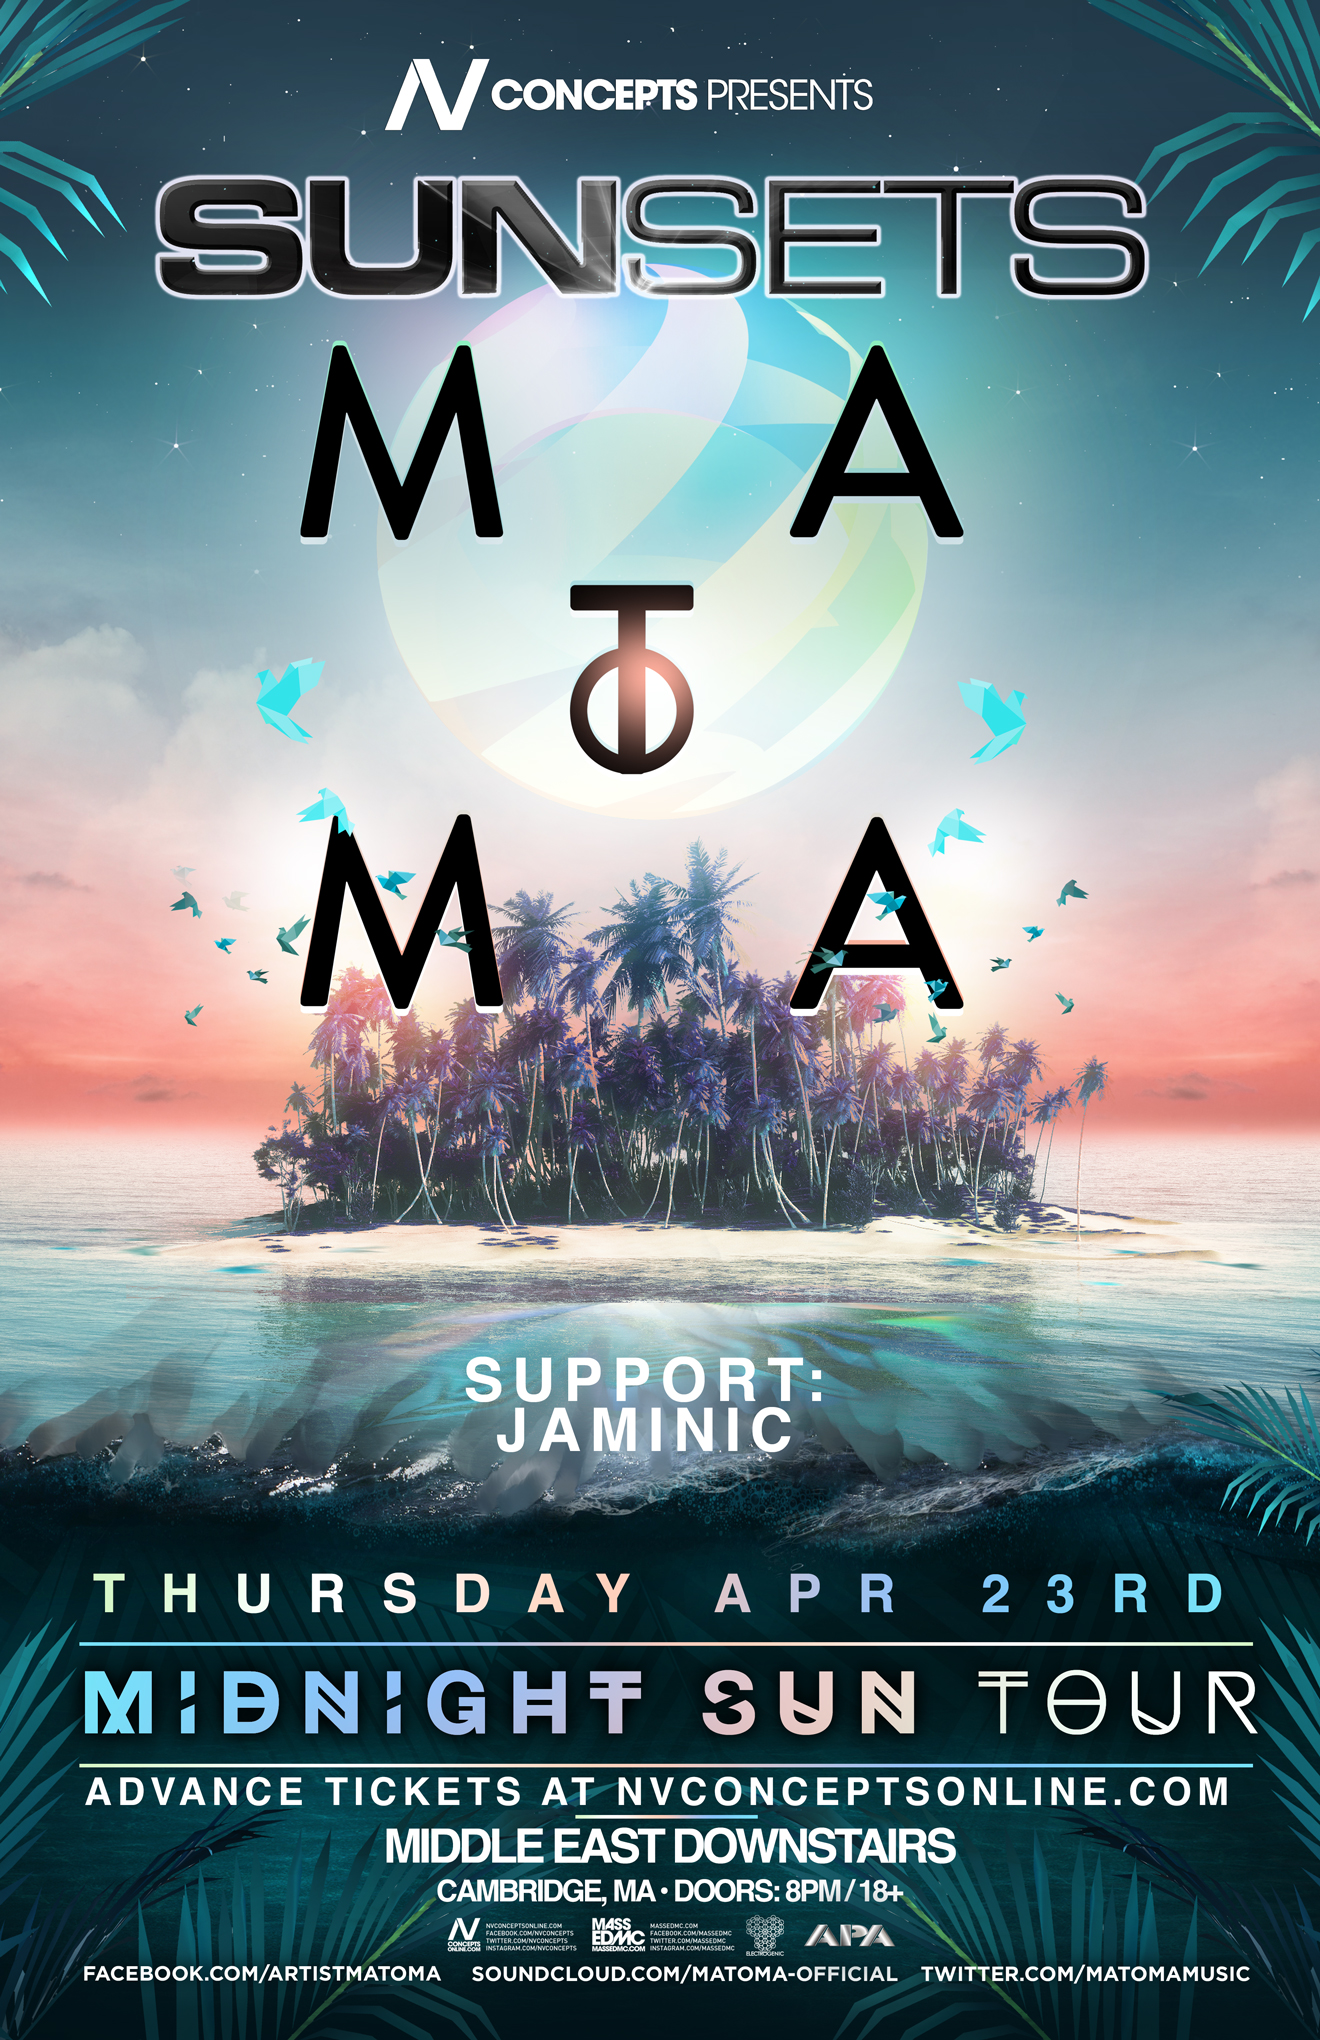 SUNSETS ft. MATOMA @ Middle East | 4.23.15, Cambridge